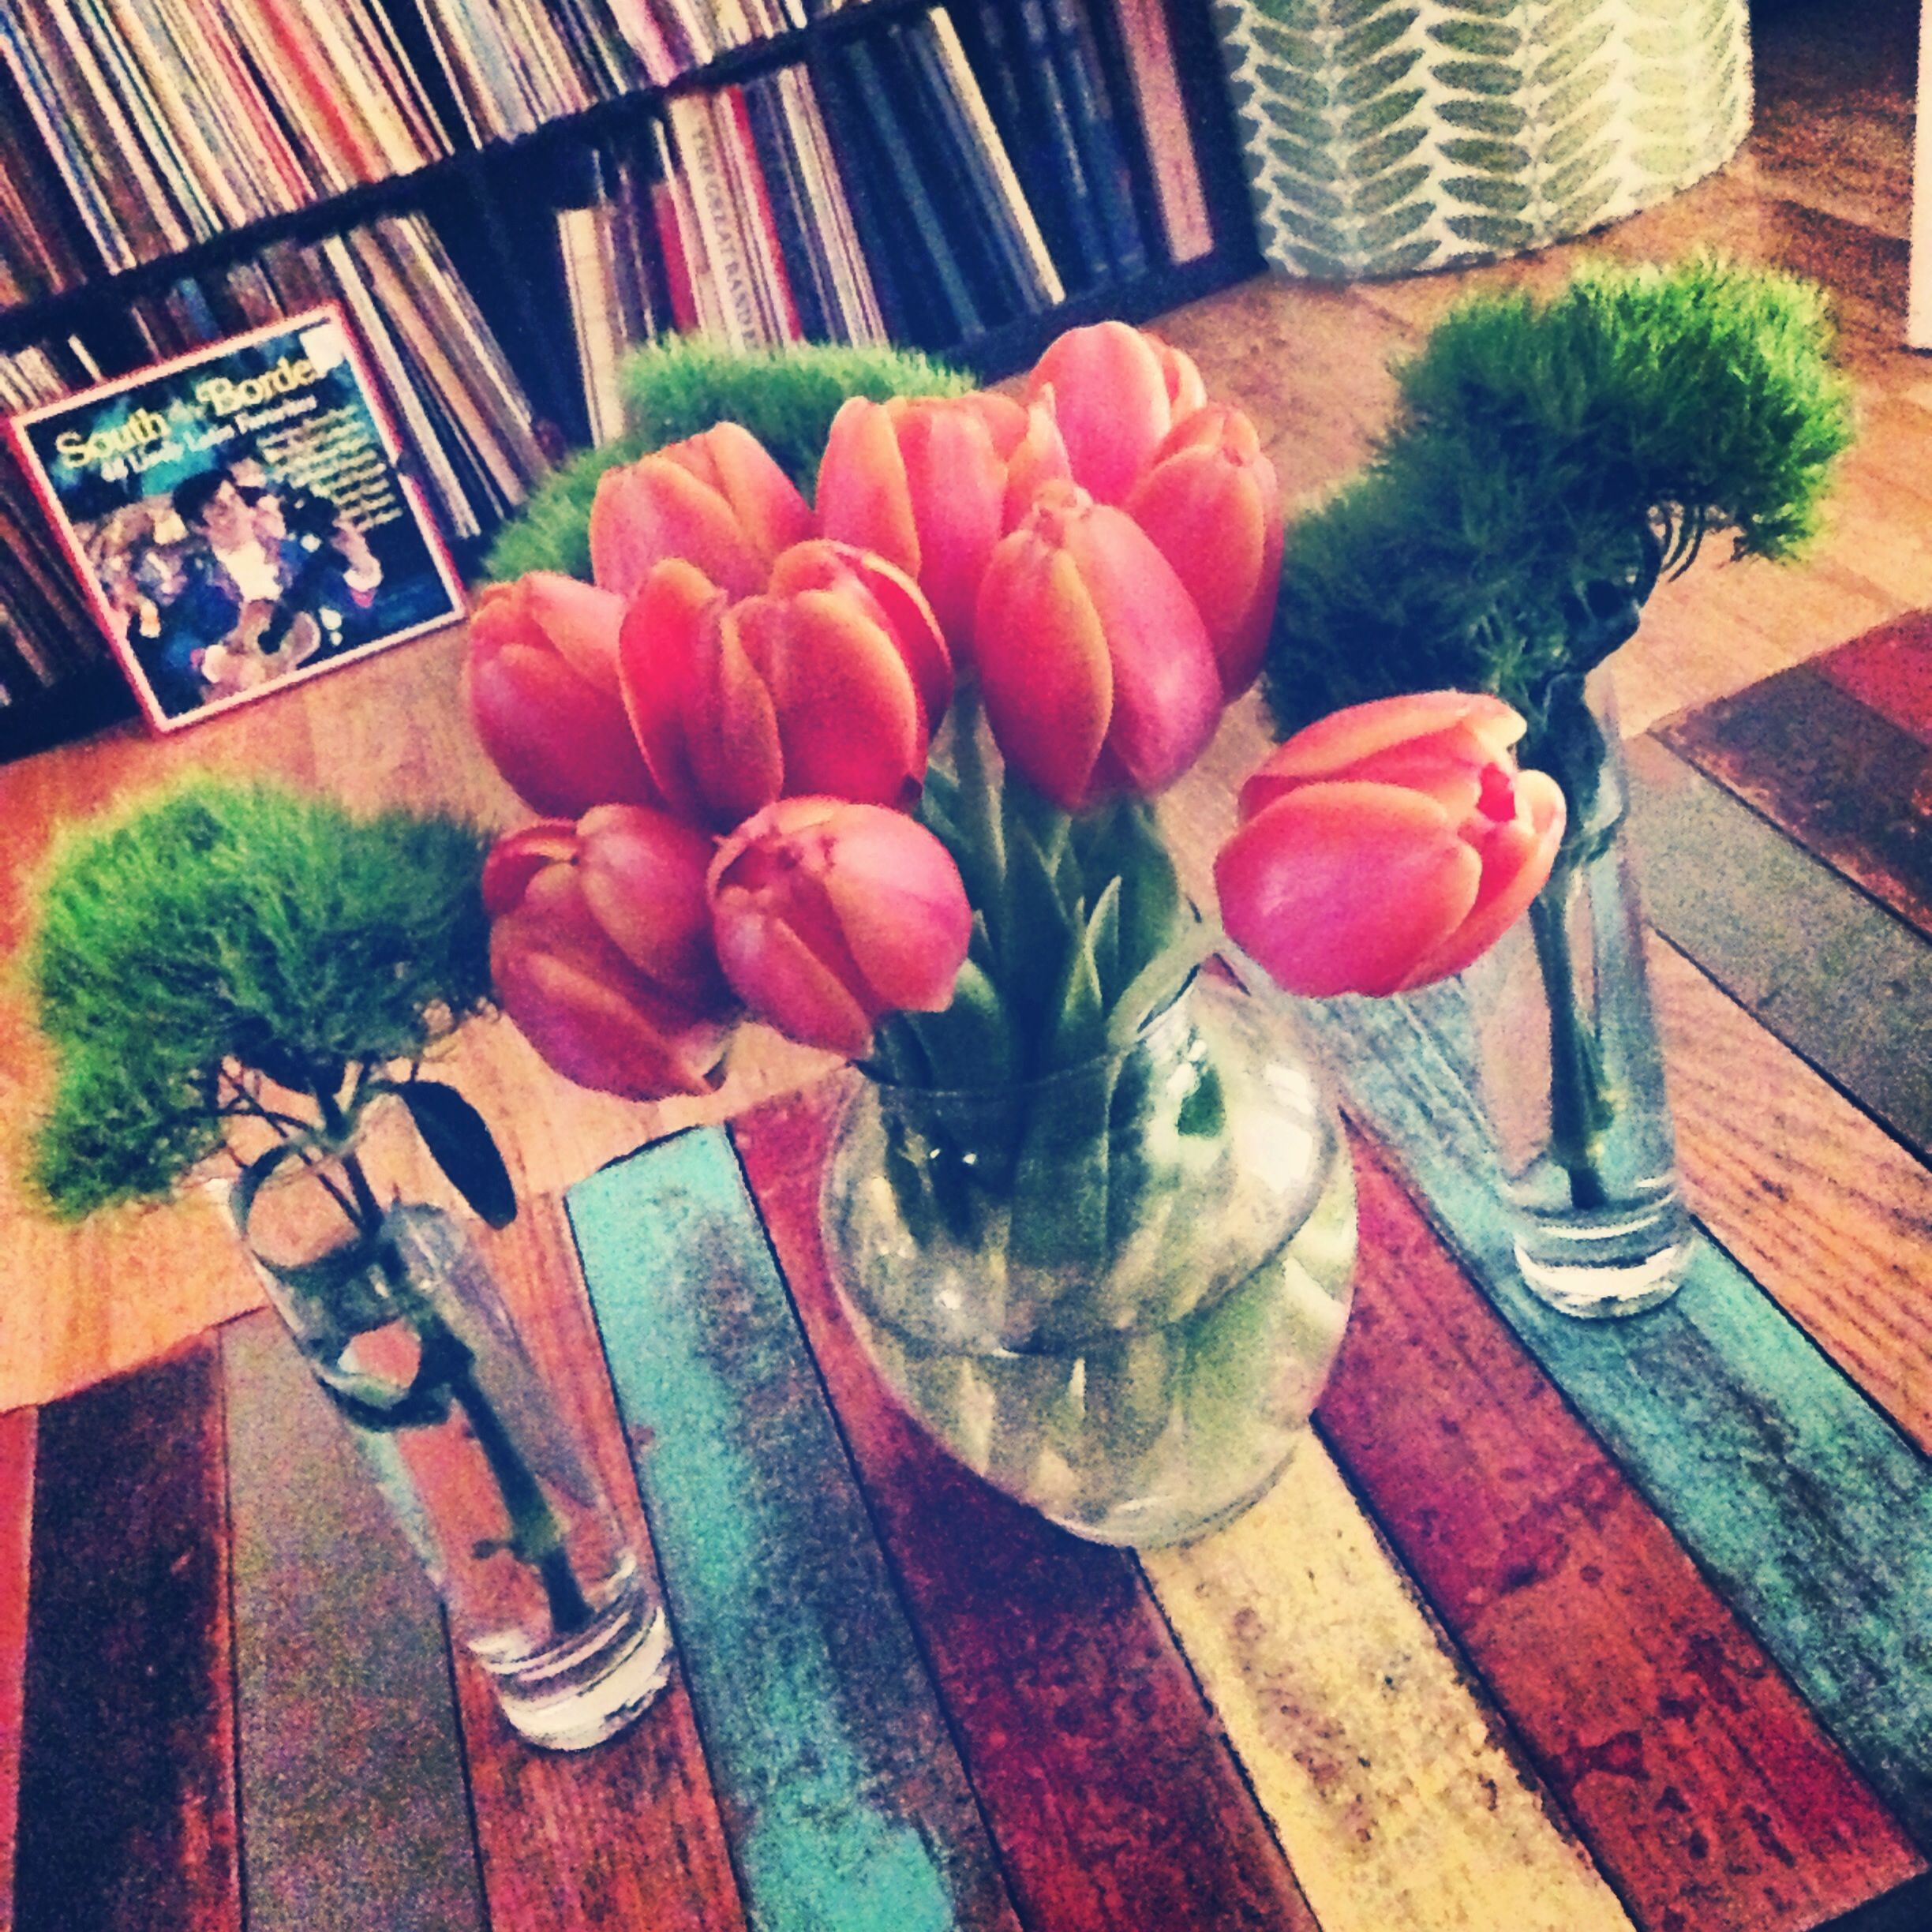 Got these at a wedding I performed at. Florist was throwing them away, so took them home to brighten up my living room...for FREE!  #tulips #flowers #livingsense #livingcents